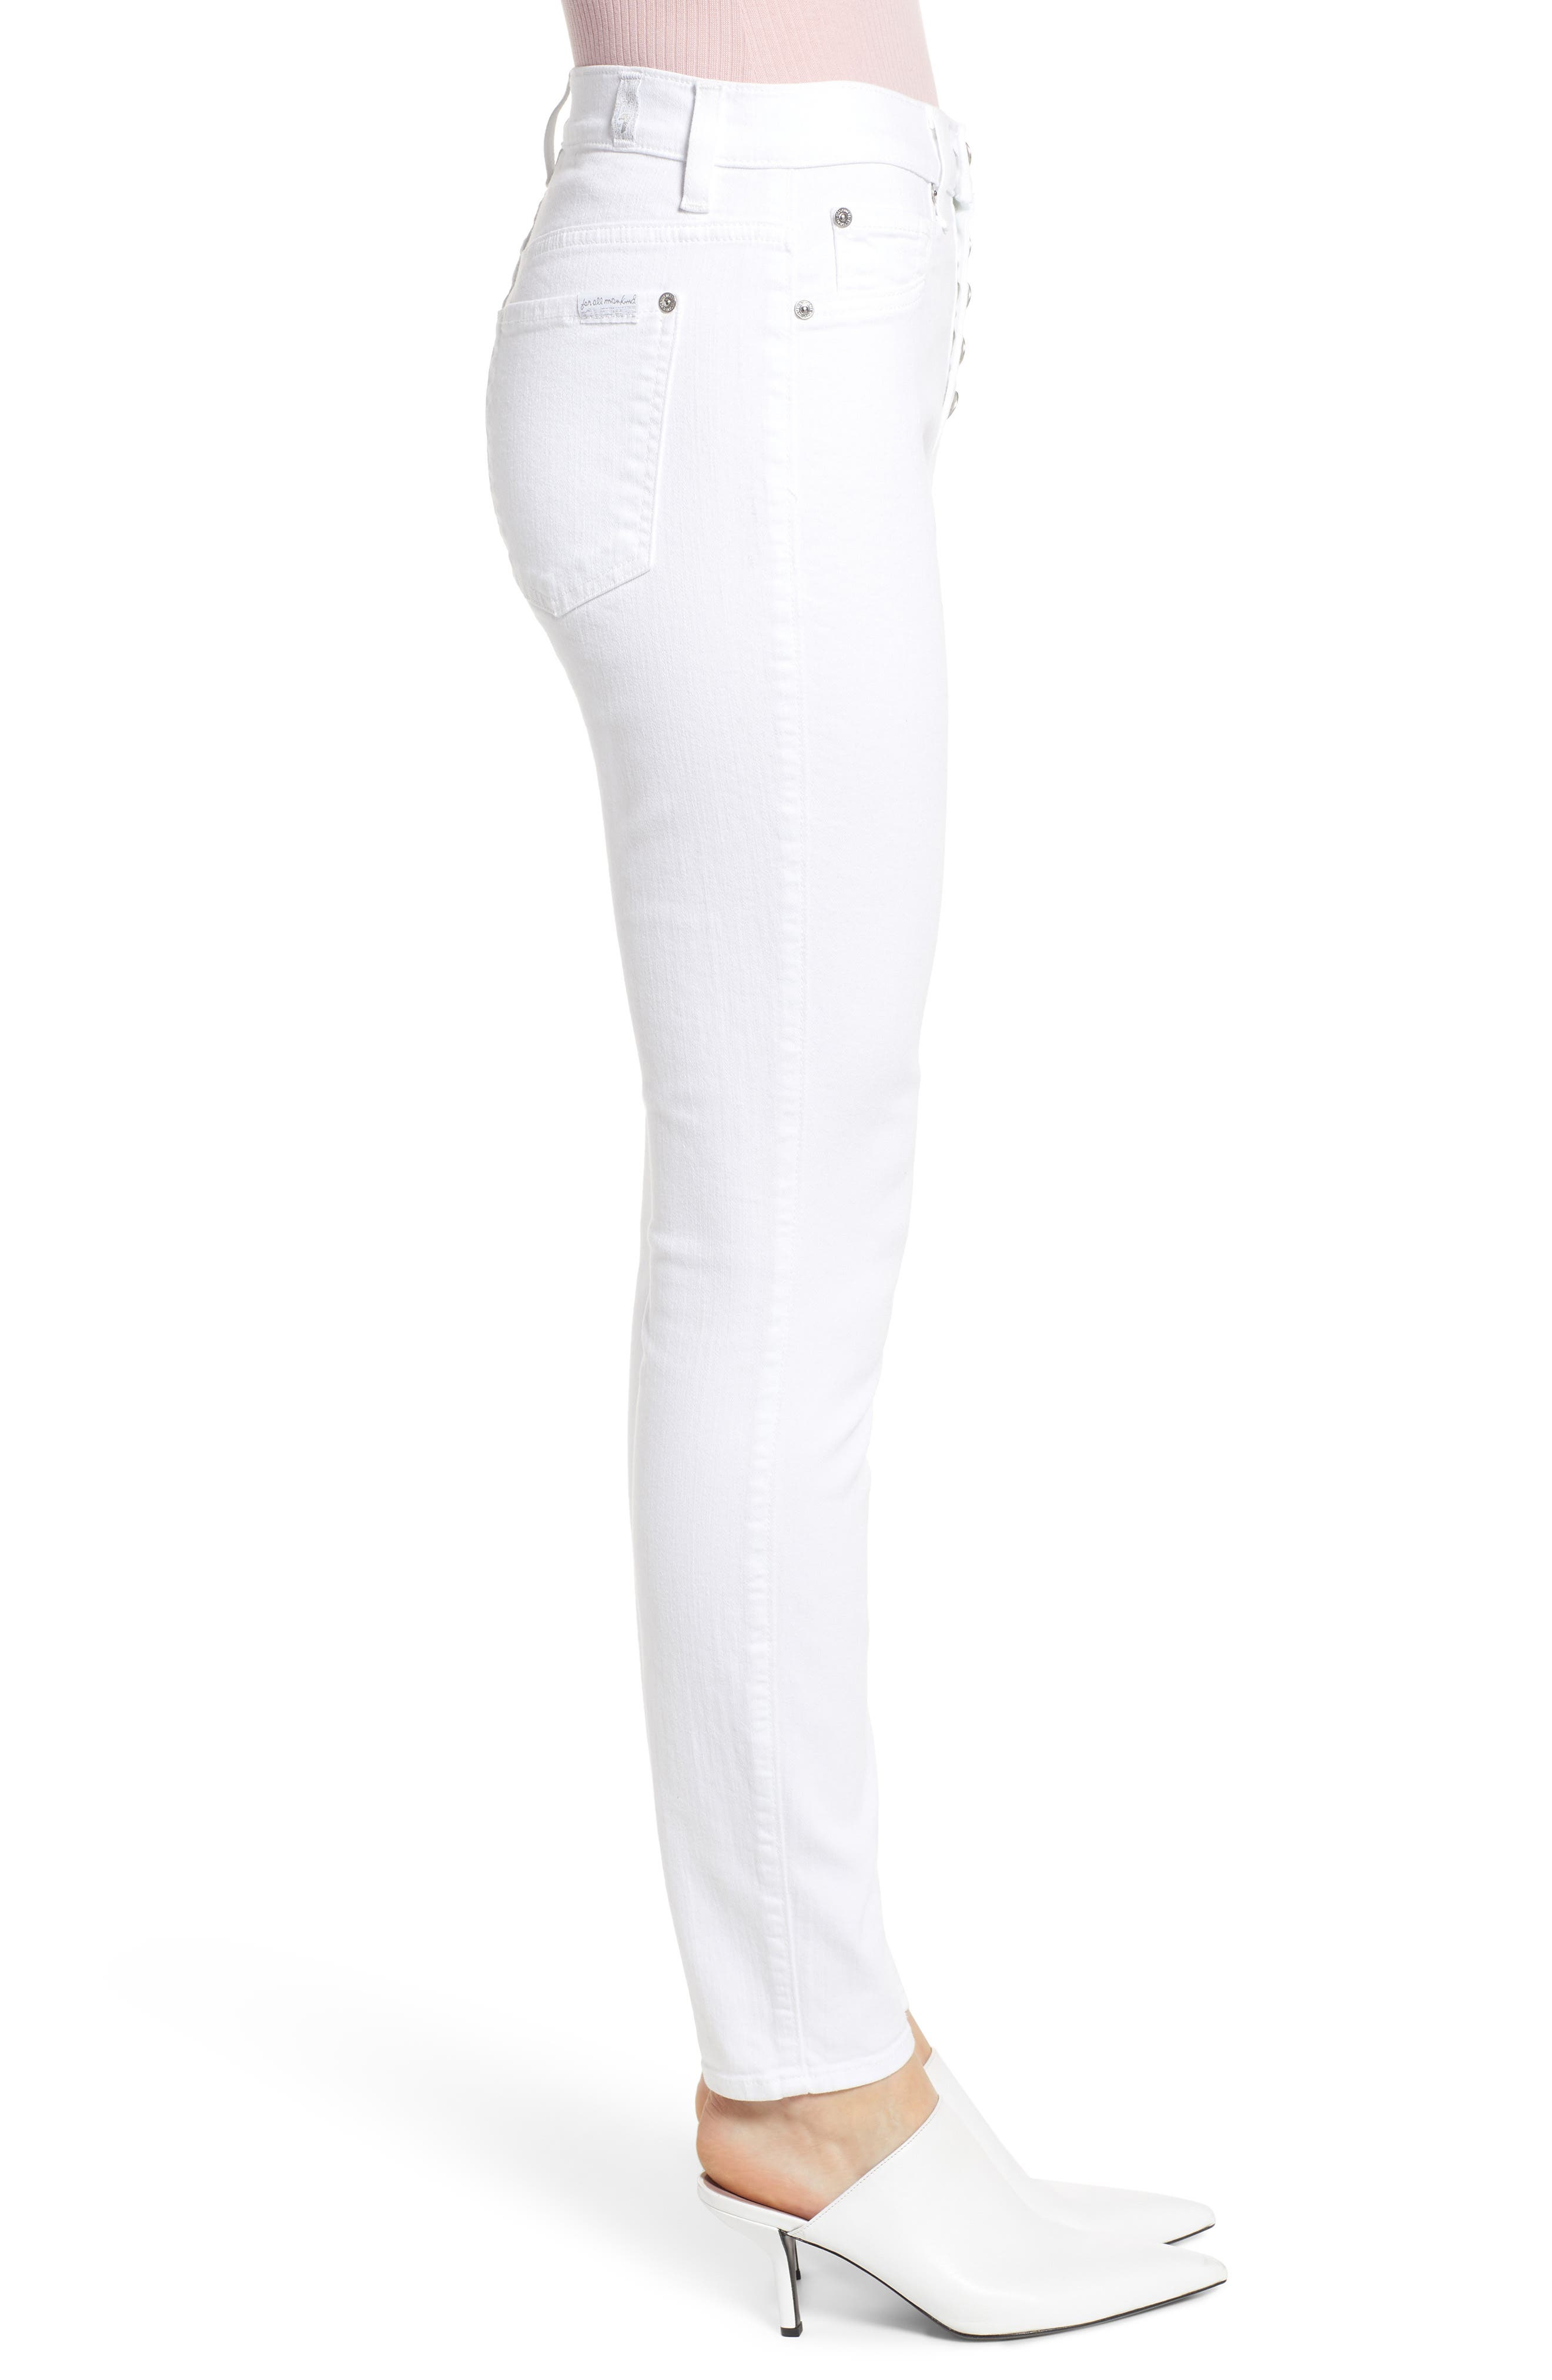 7 FOR ALL MANKIND<SUP>®</SUP>, Button Fly High Waist Ankle Skinny Jeans, Alternate thumbnail 4, color, WHITE RUNWAY DENIM